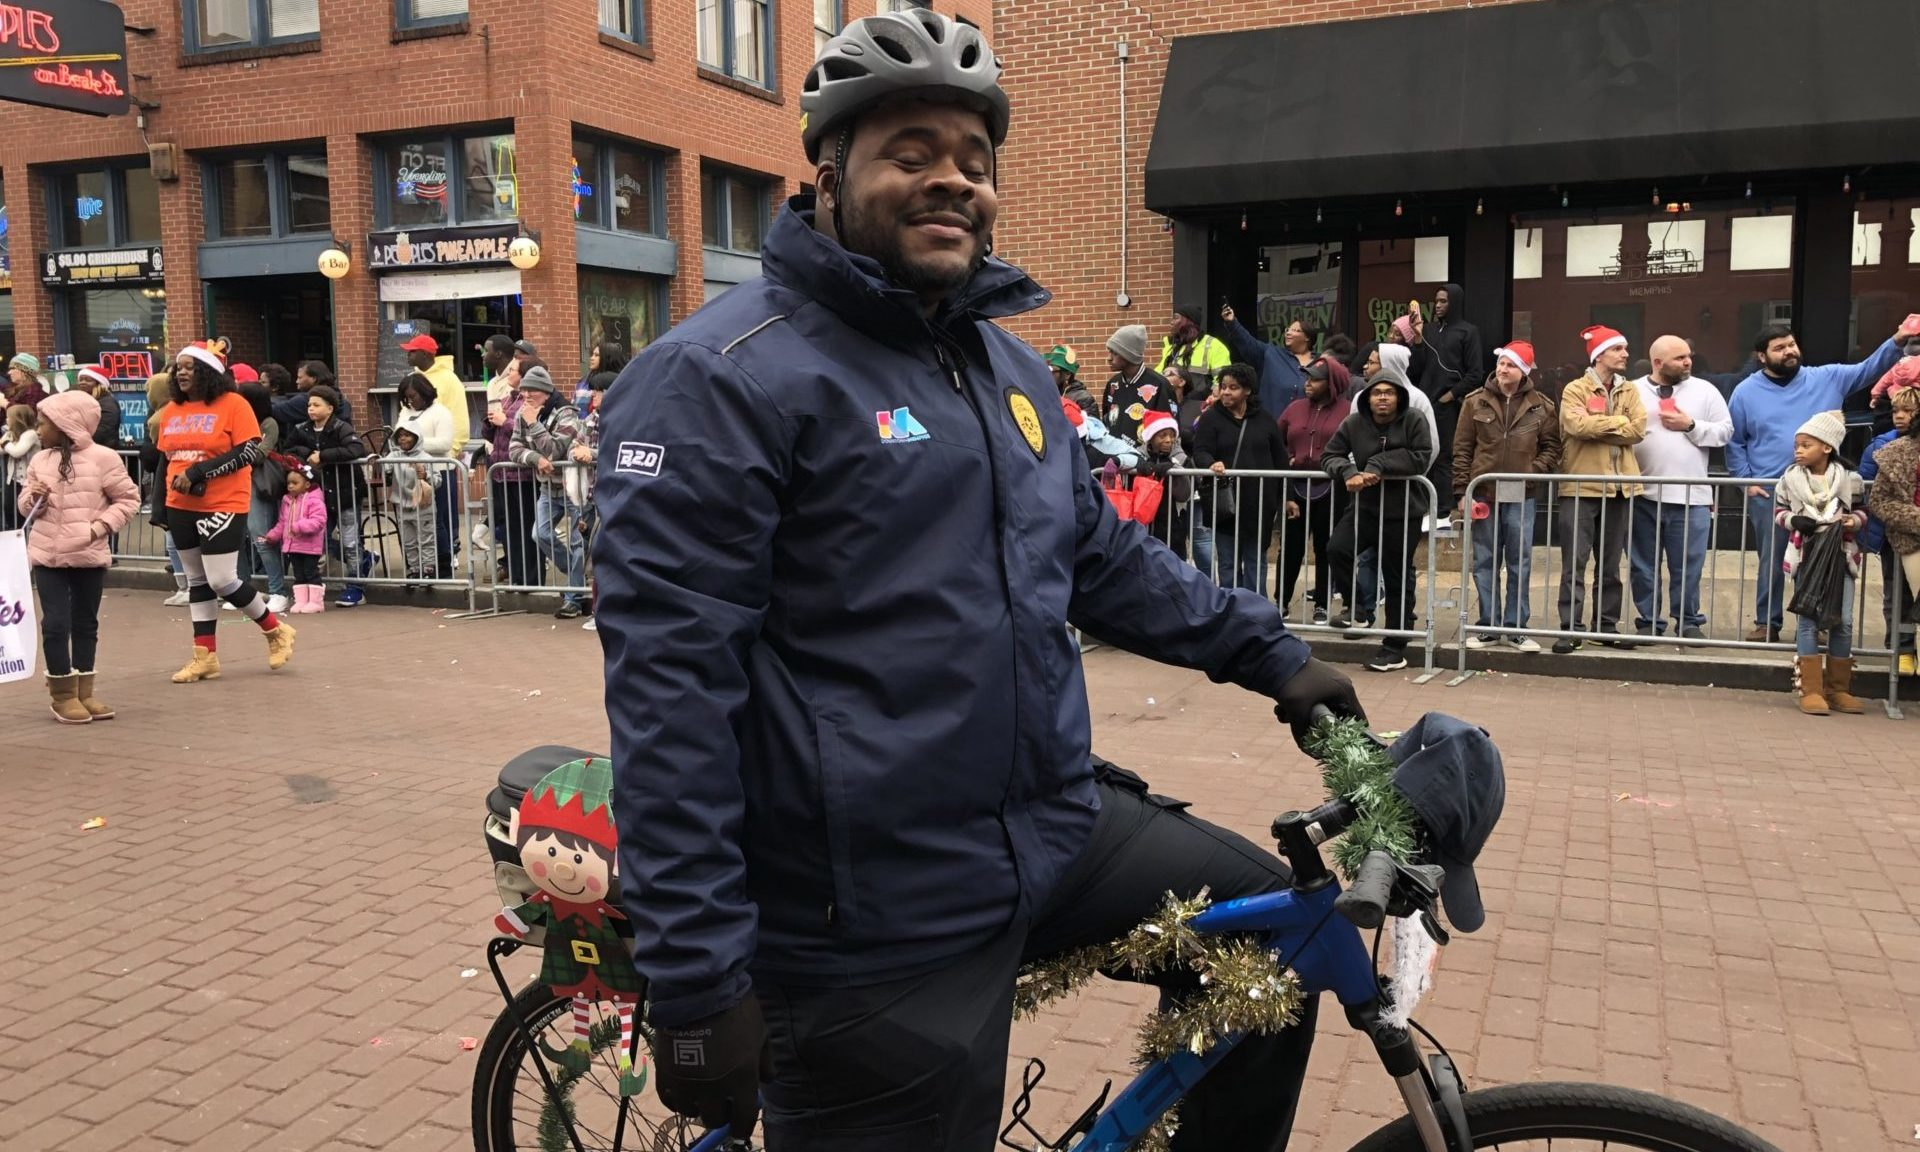 Blue Suede brigade member patrol on bike Beale Street Holiday Parade, Downtown Memphis